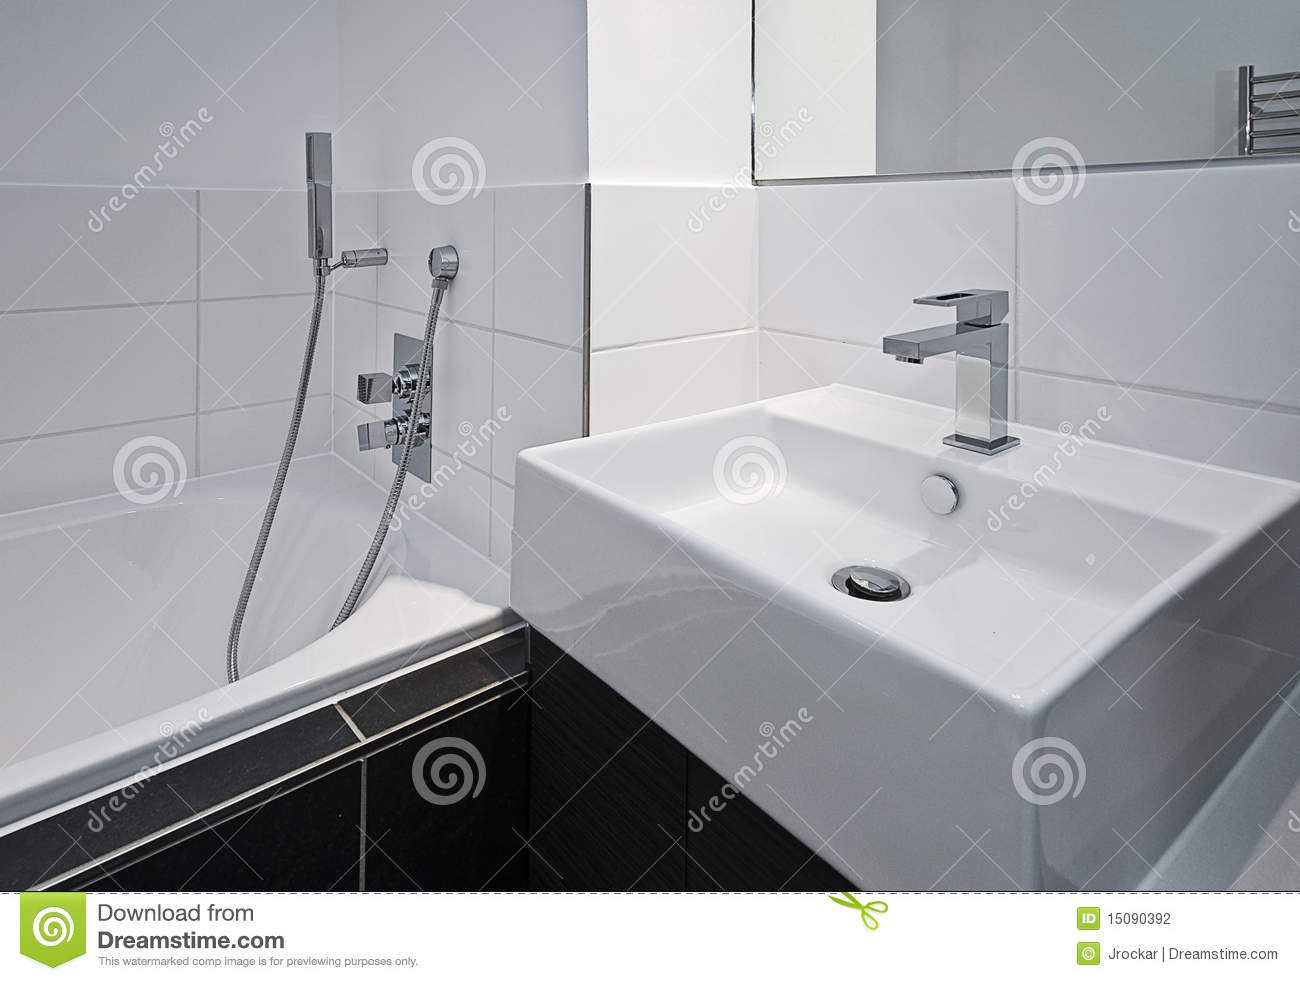 designer bathroom appliances stock photography - image: 15090392